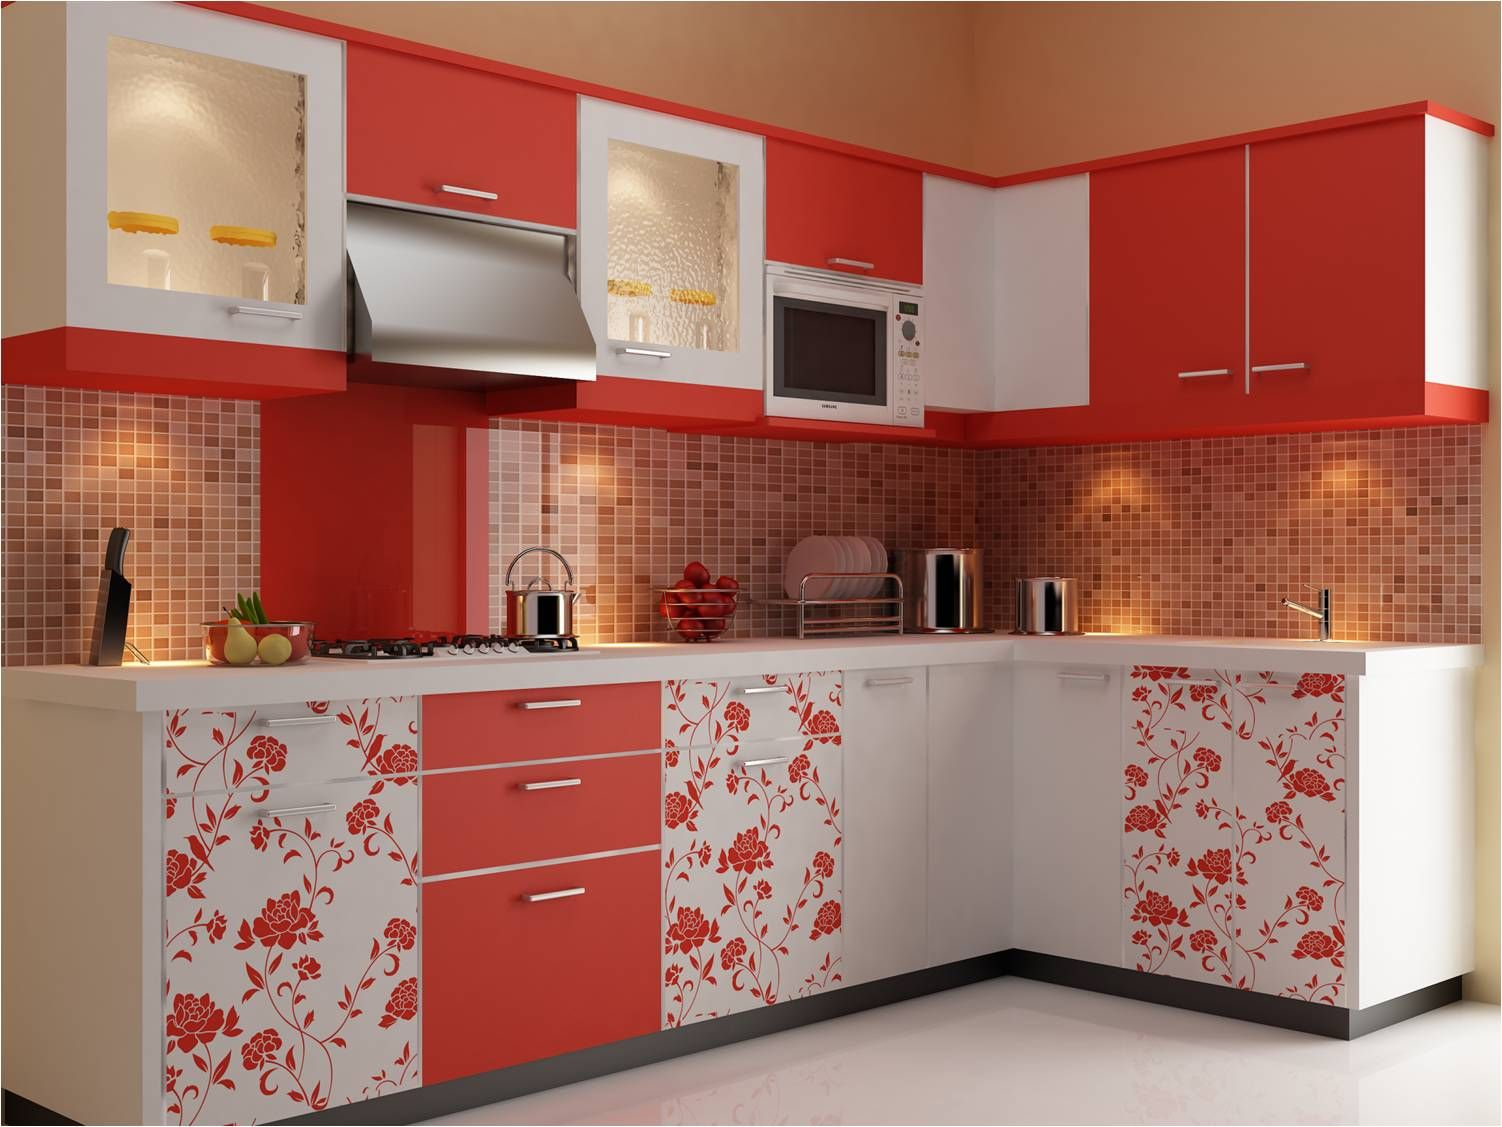 Modular Kitchen Furniture 10 Best Images About Tambaram Modular Kitchen On Pinterest